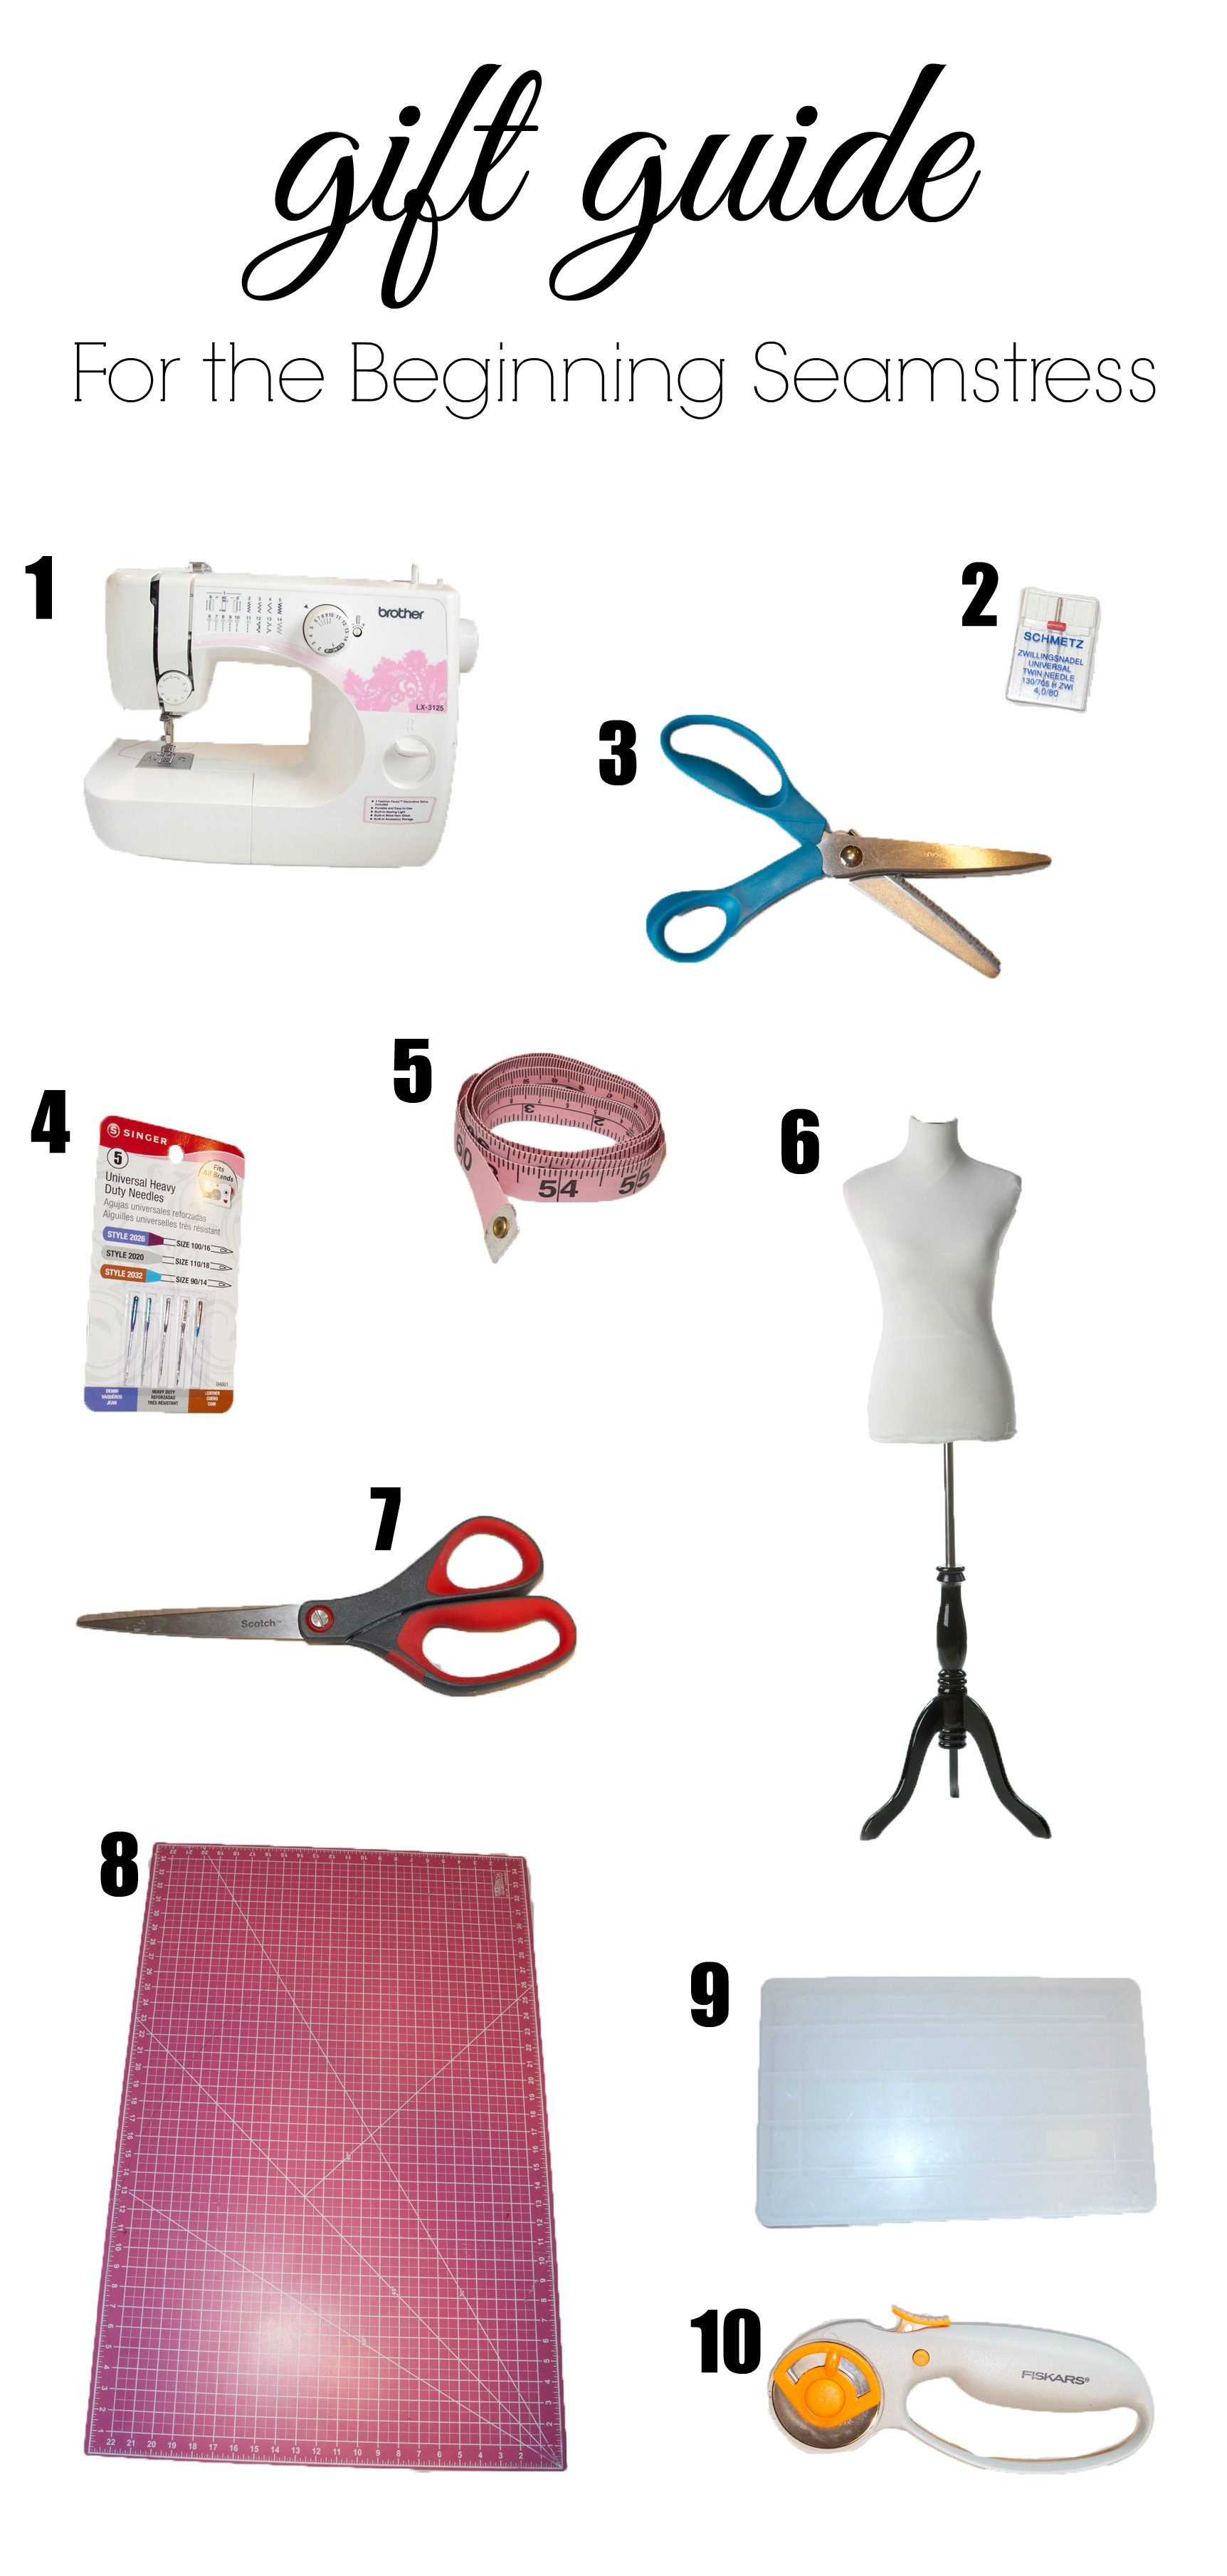 Seamstress Gift Guide for the beginning seamstress from someone who sews a lot